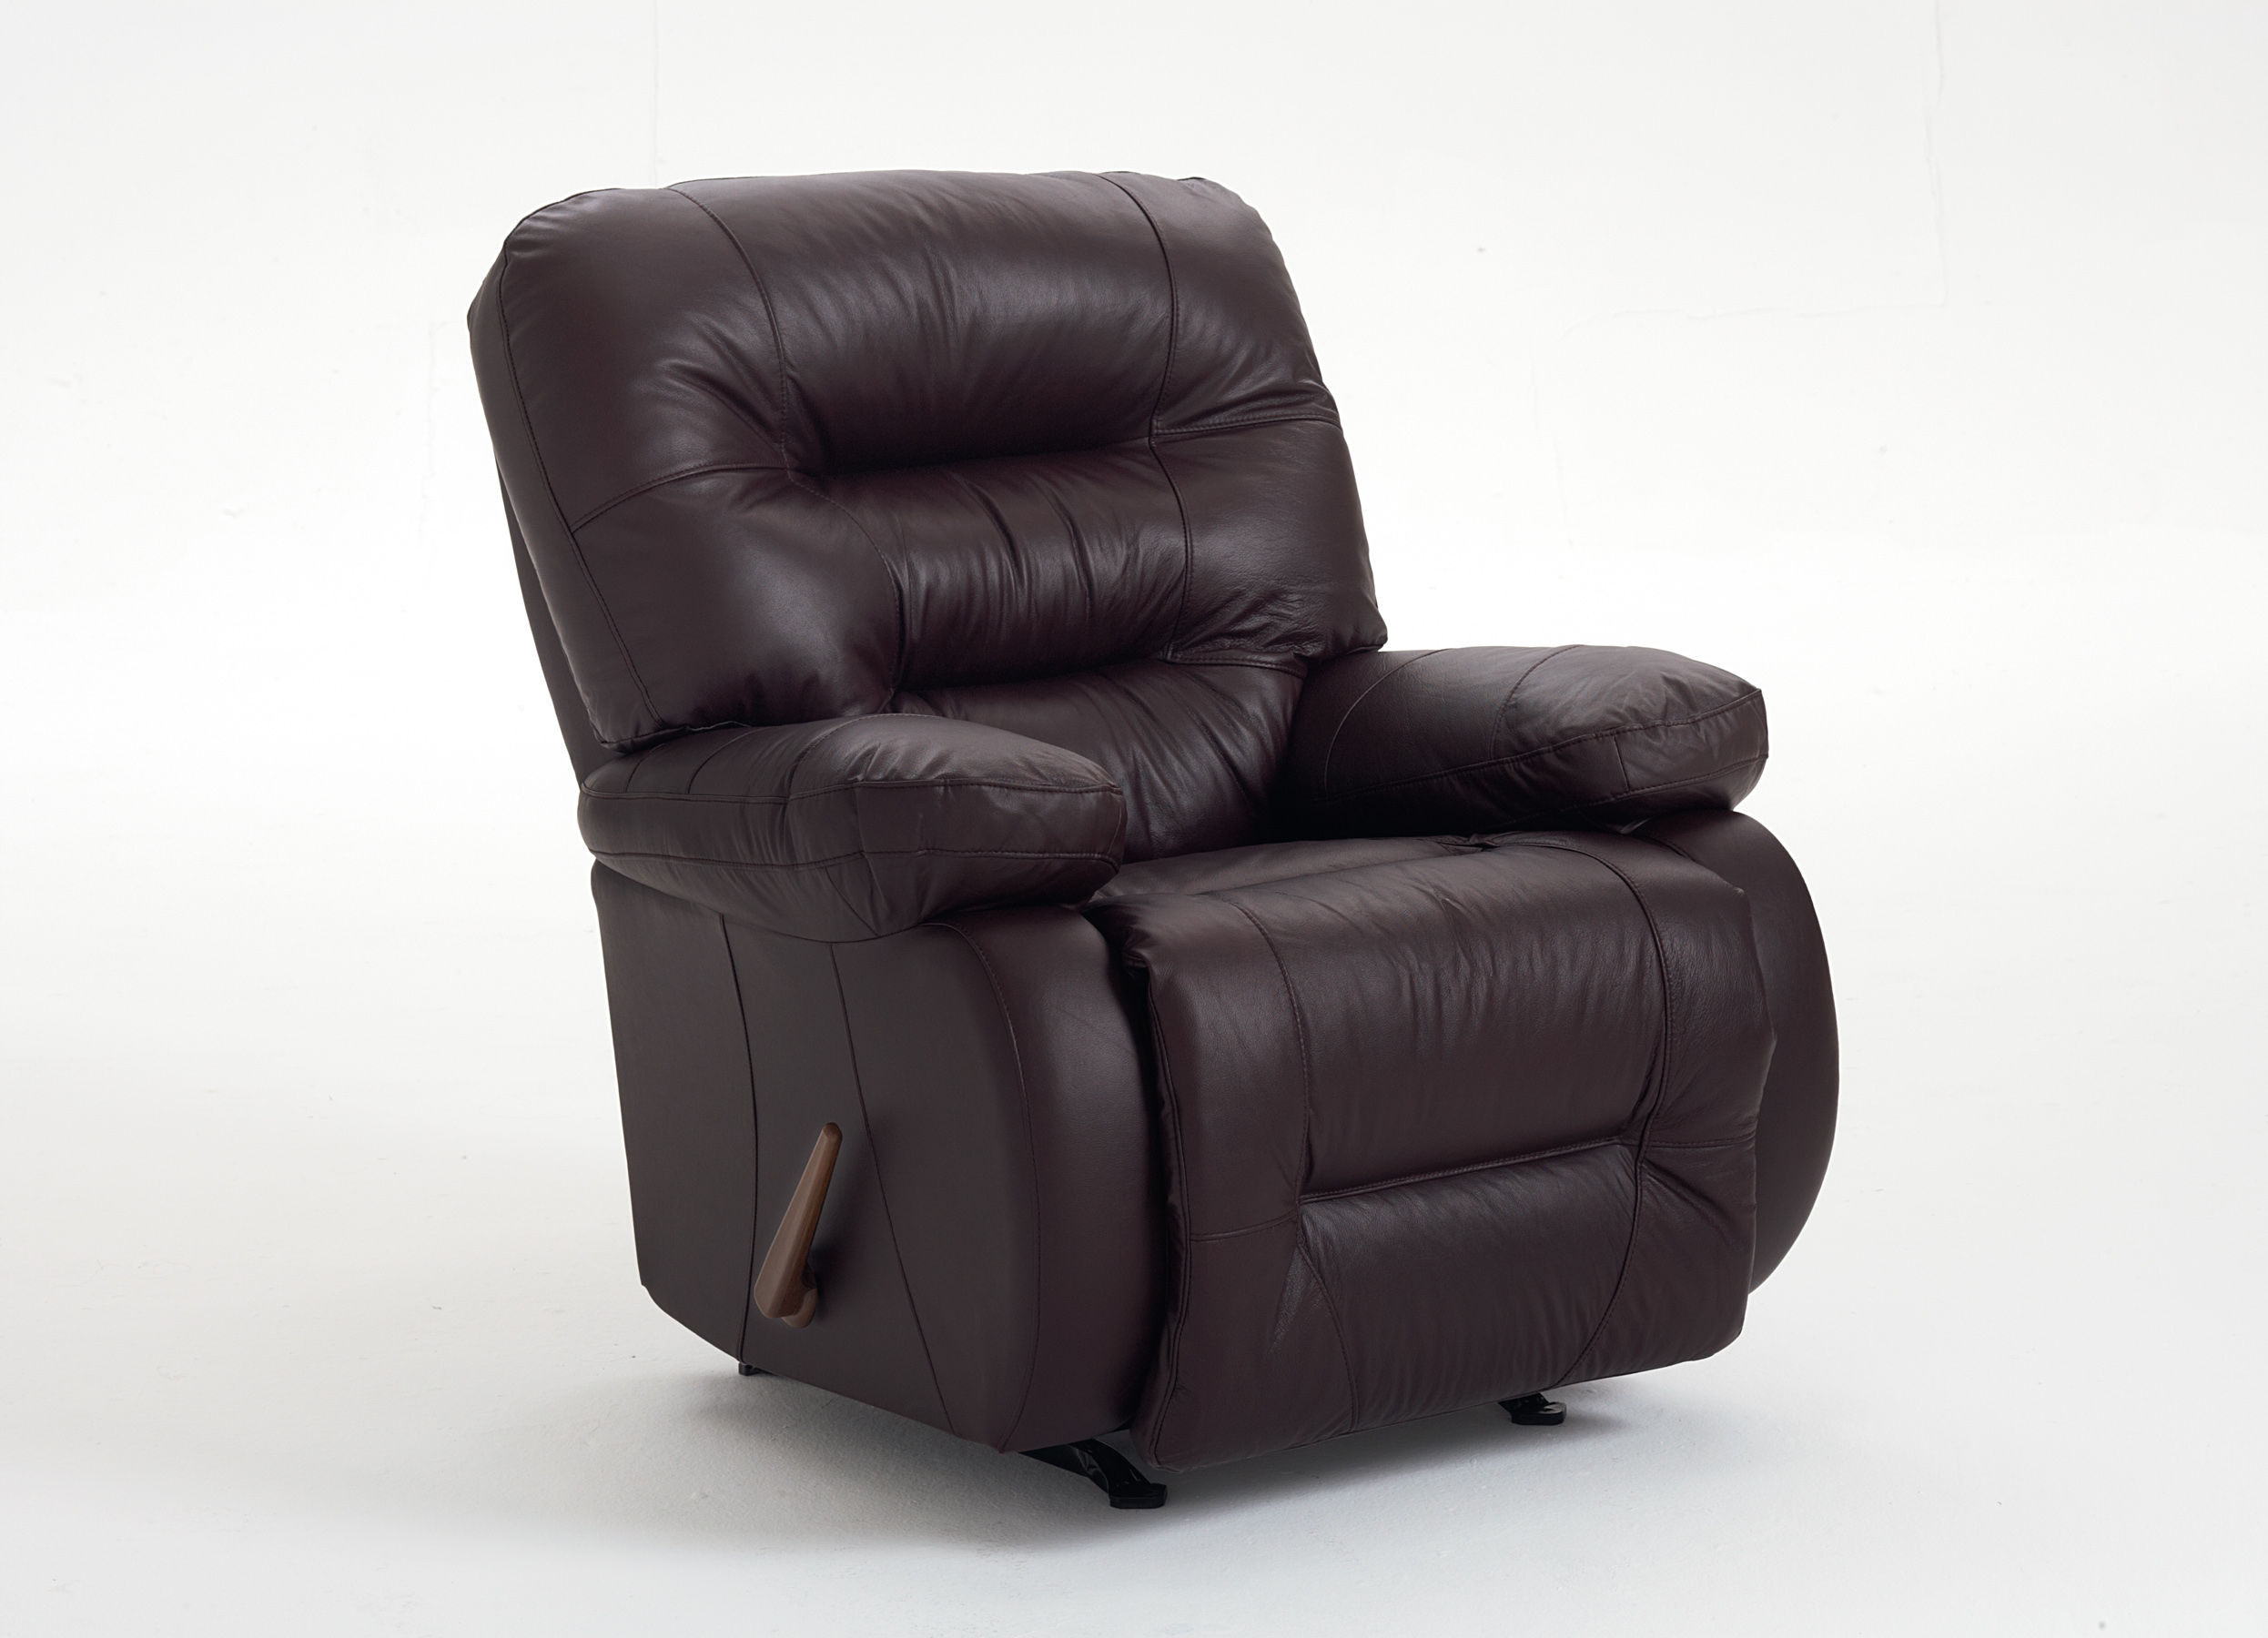 recliner price cheap macy chairs brown ottoman chair macys and off leather s aby